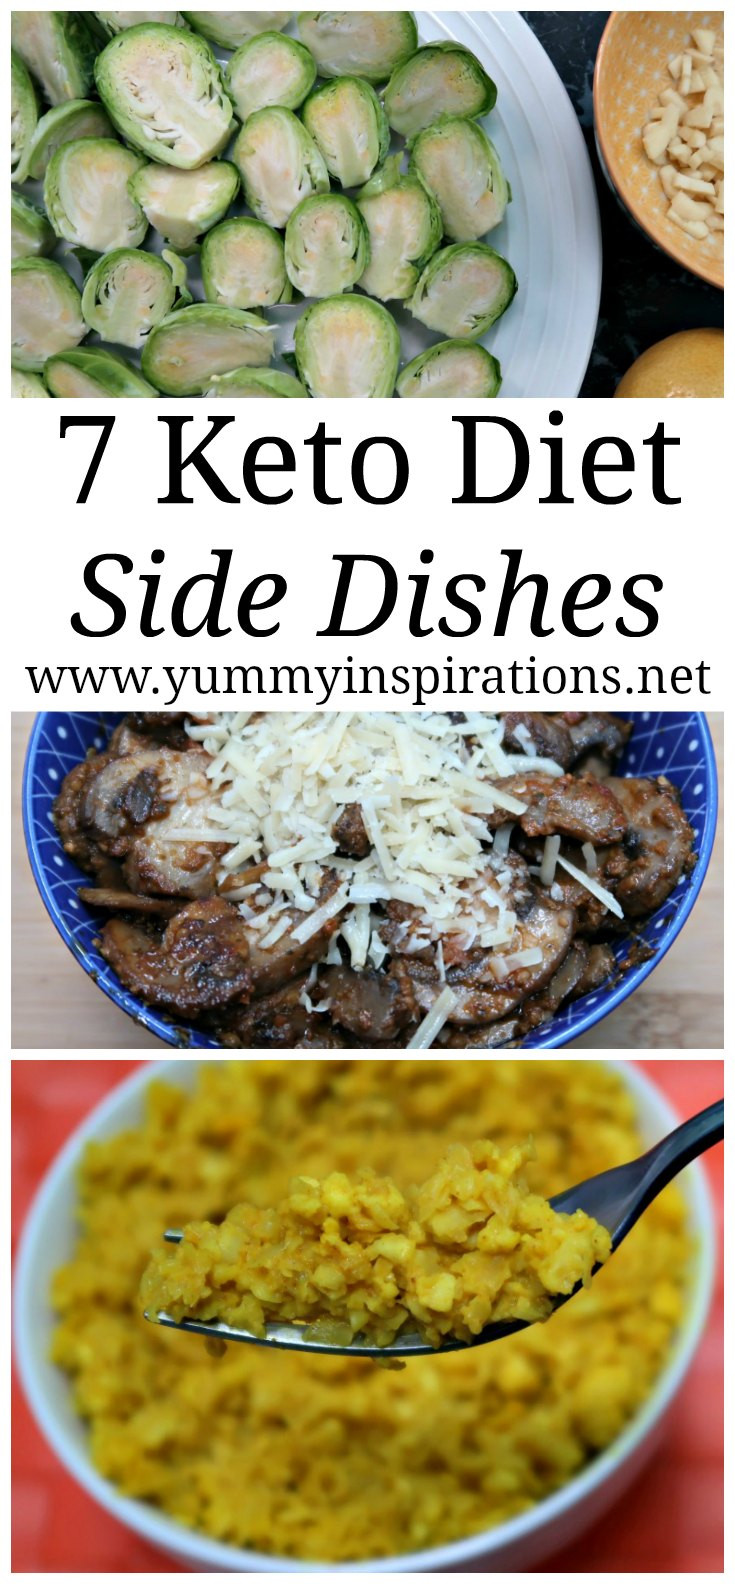 Low Carb Dinner Sides  7 Keto Side Dishes Easy Low Carb Sides LCHF Recipes